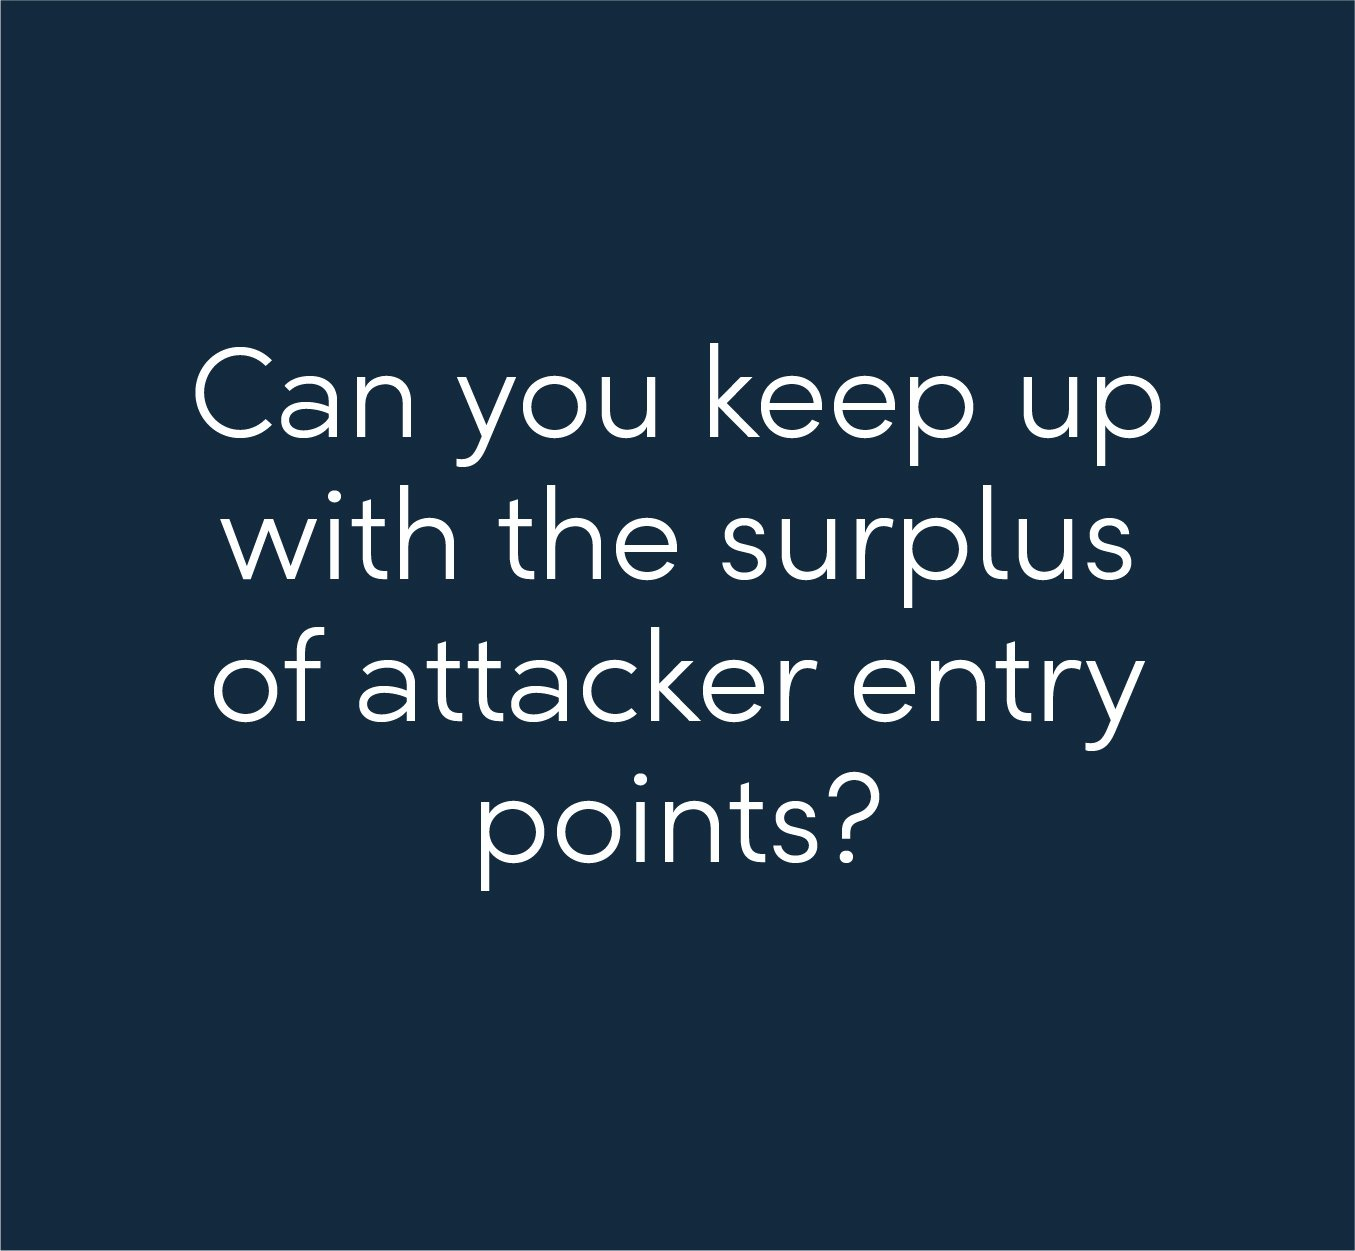 Can you keep up with the surplus of attacker entry points?